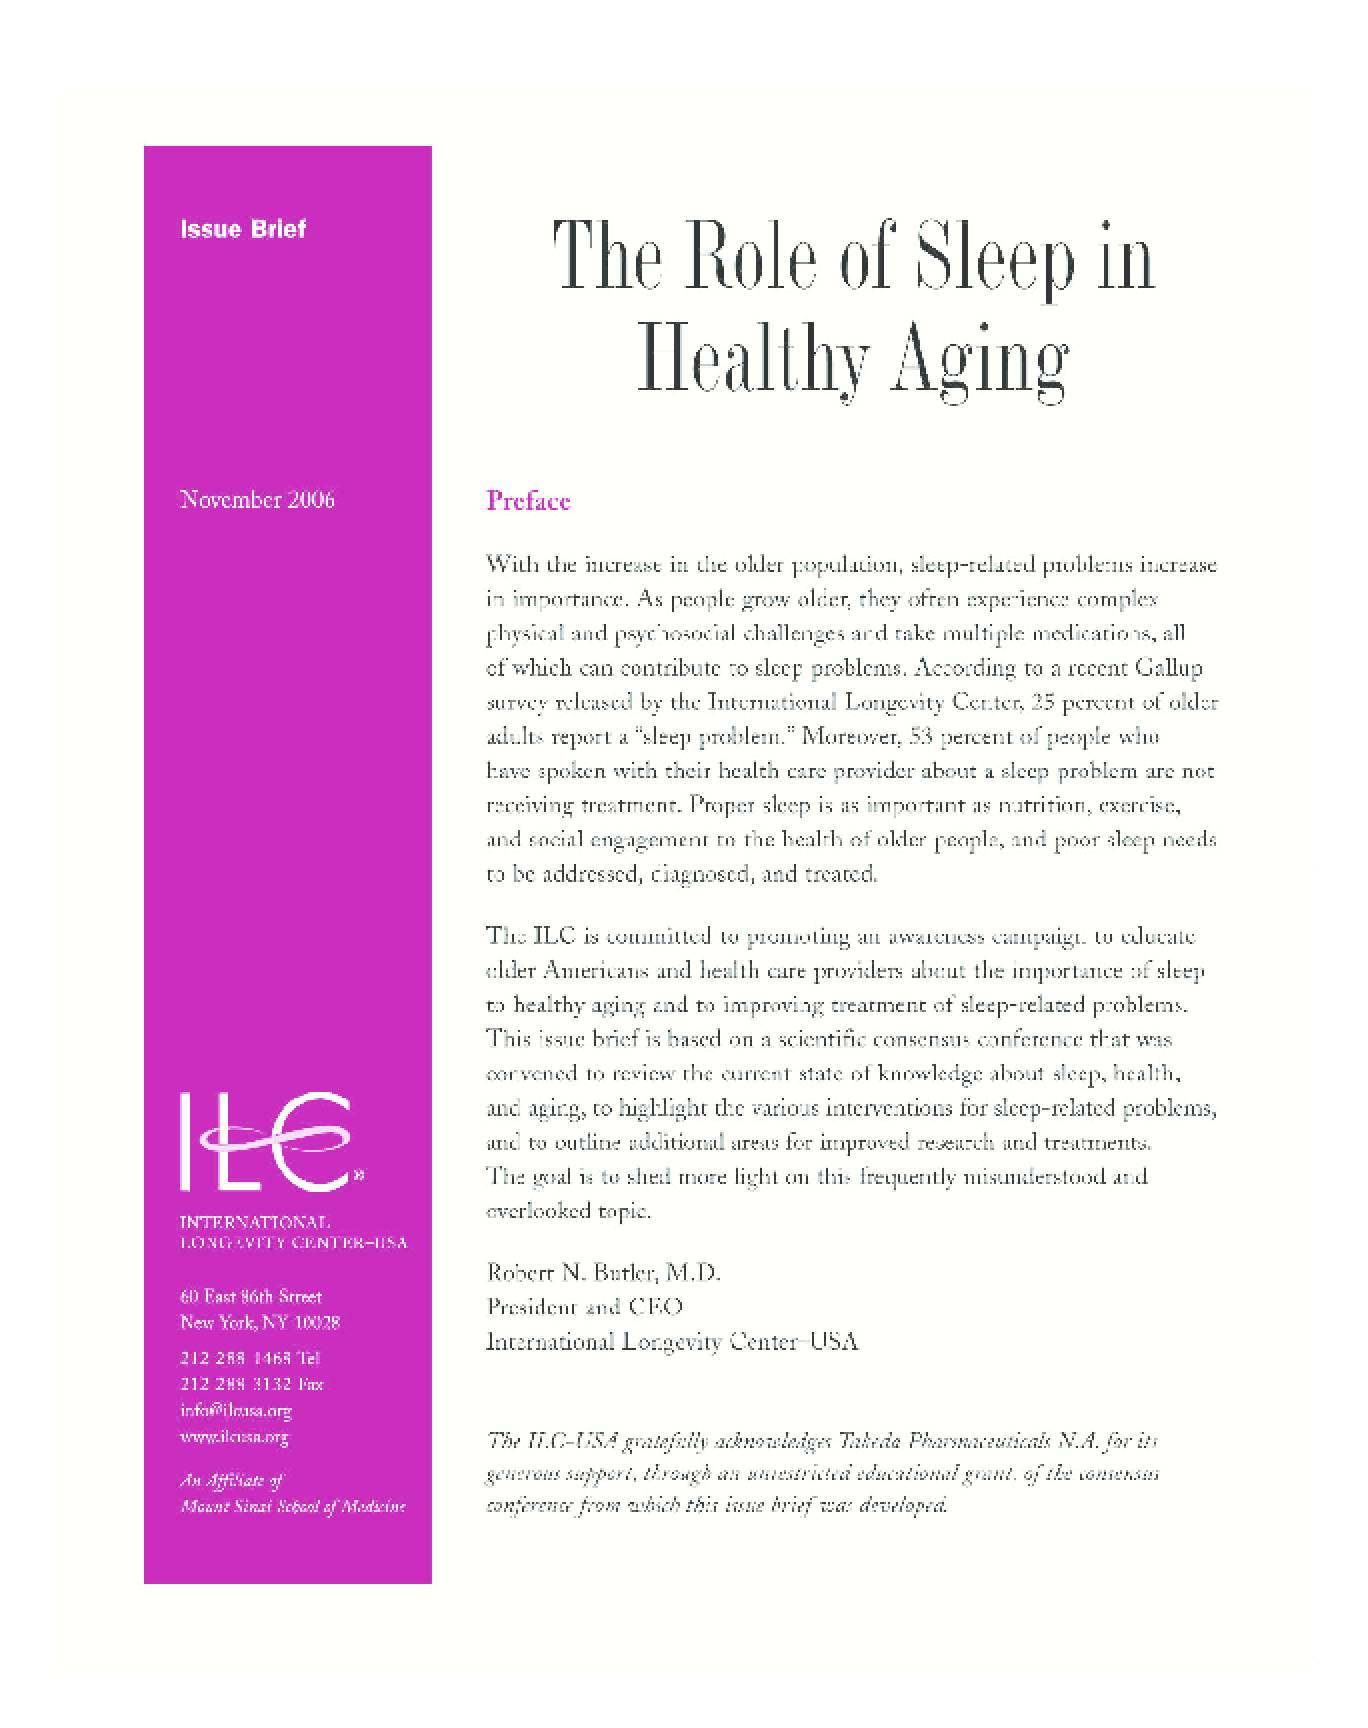 The Role of Sleep in Healthy Aging